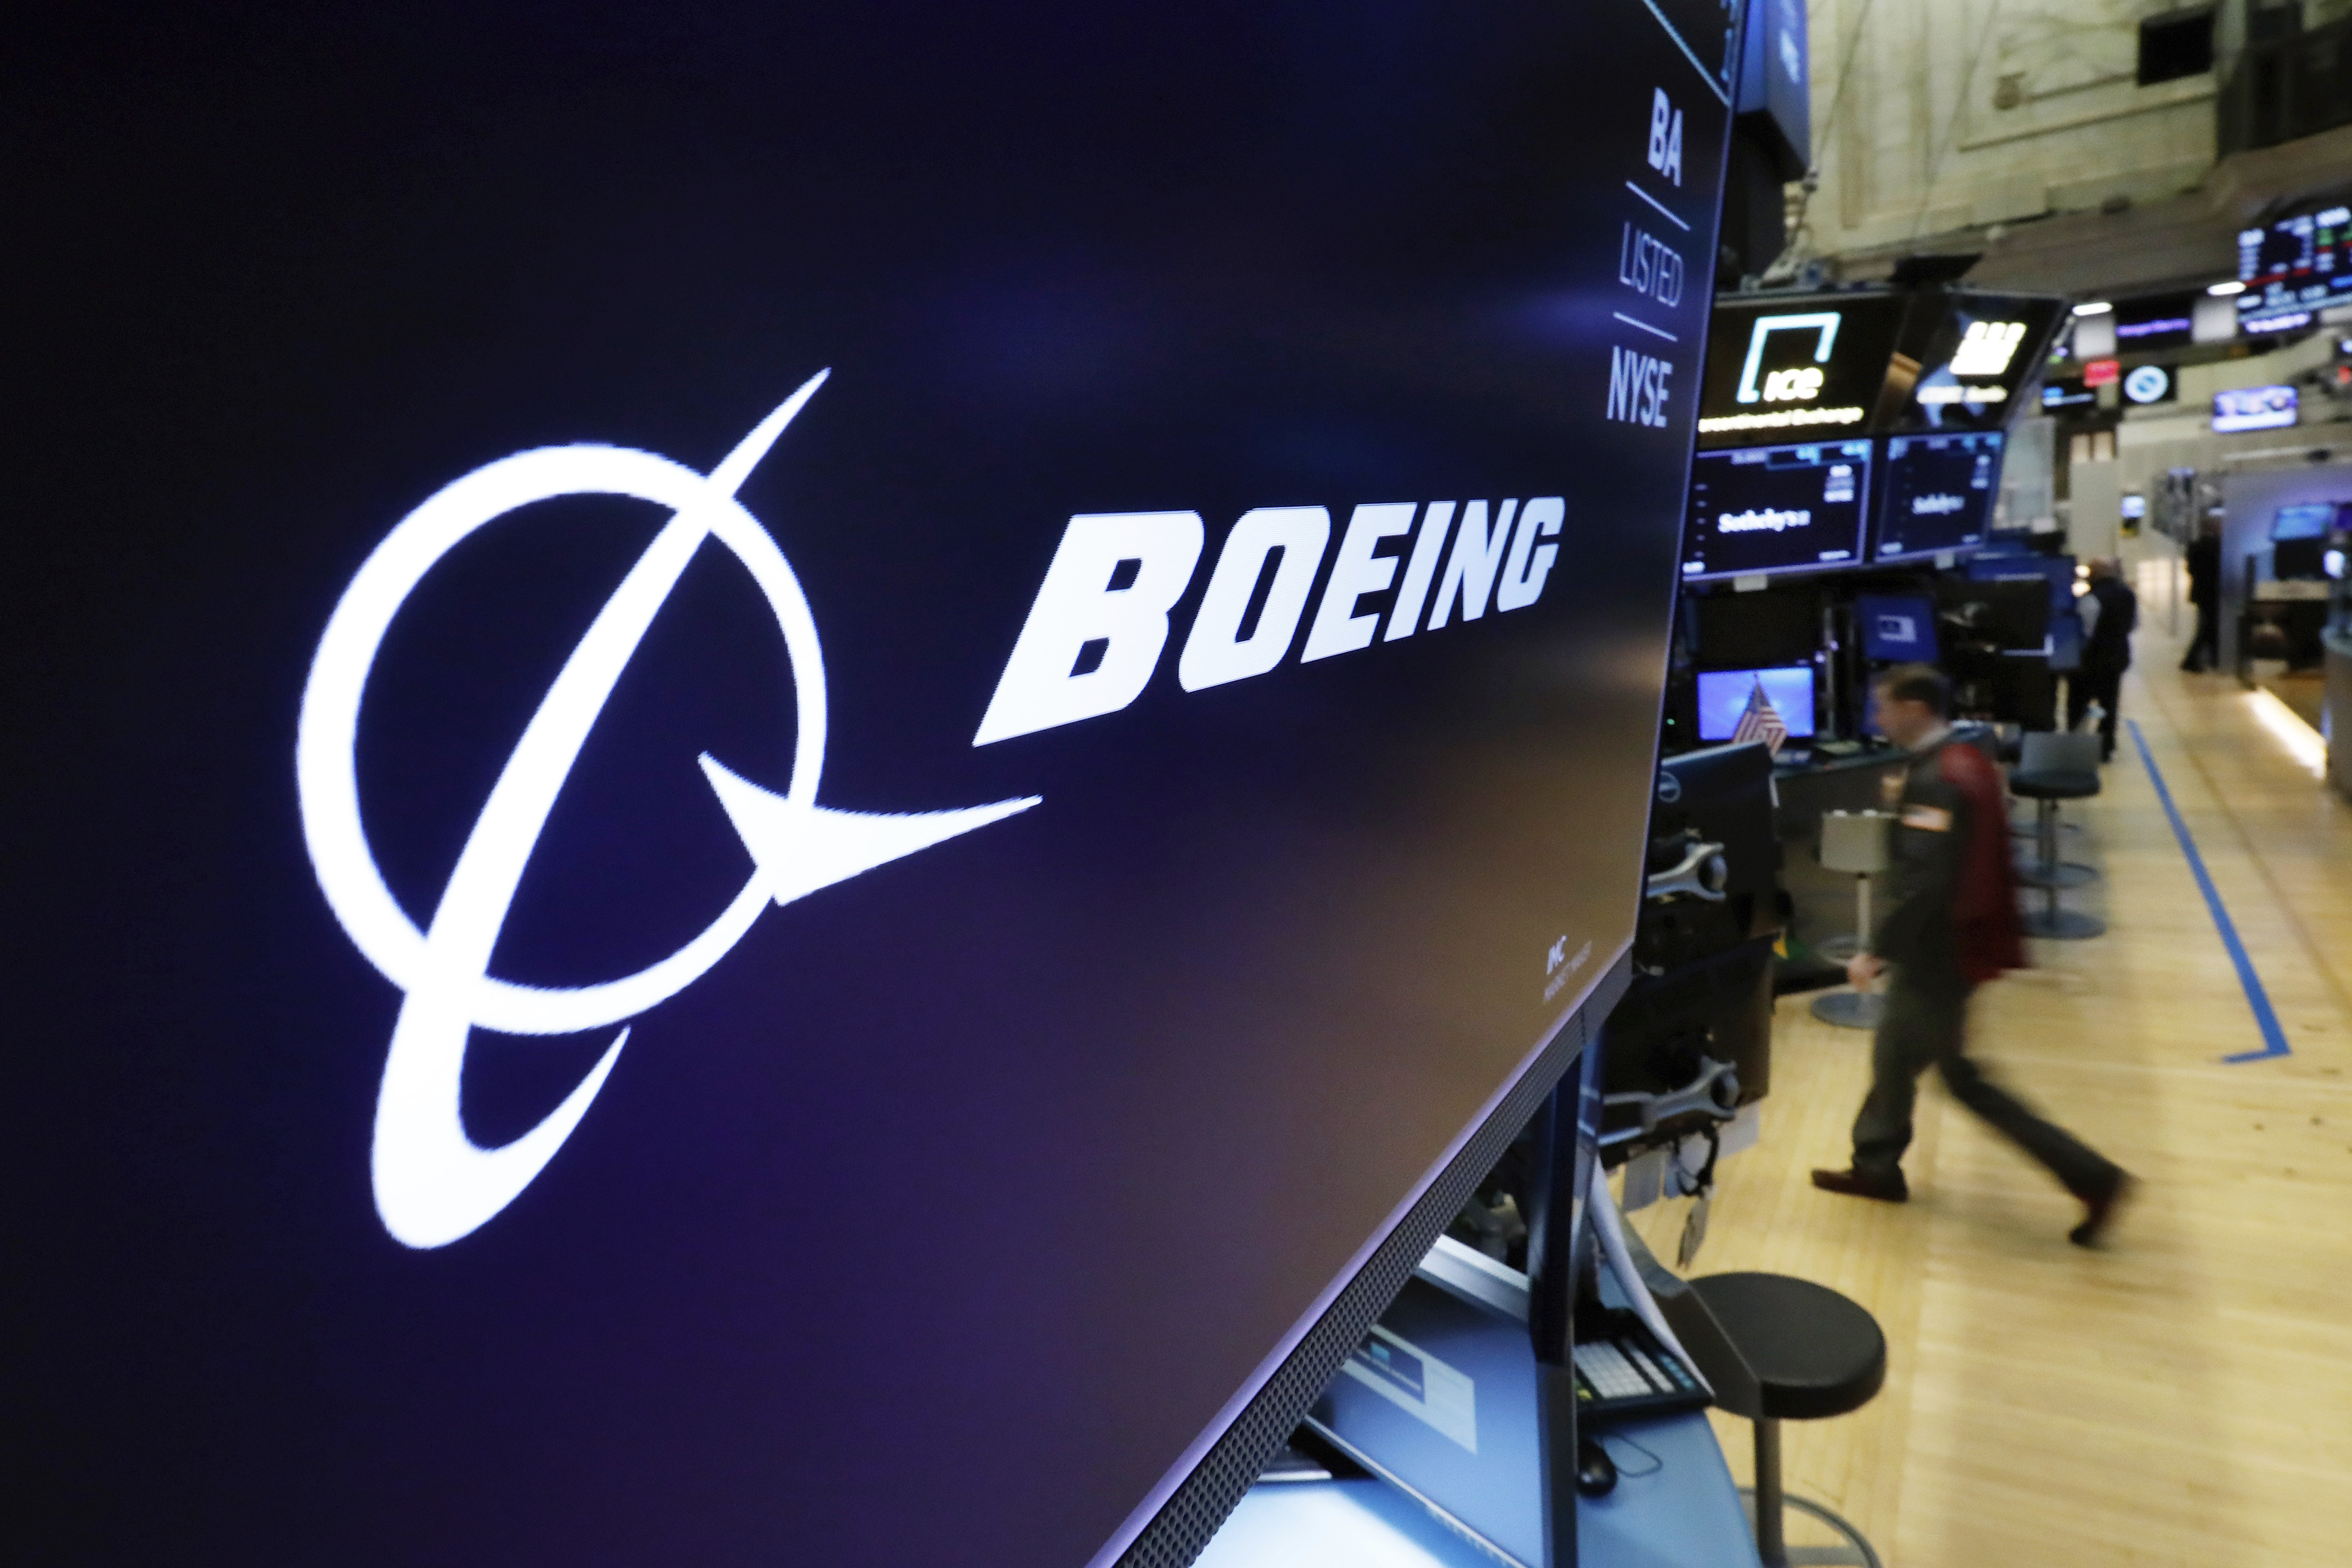 The test is a pivotal moment in Boeing's worst-ever corporate crisis, long since compounded by the Covid-19 pandemic that has slashed air travel and jet demand.